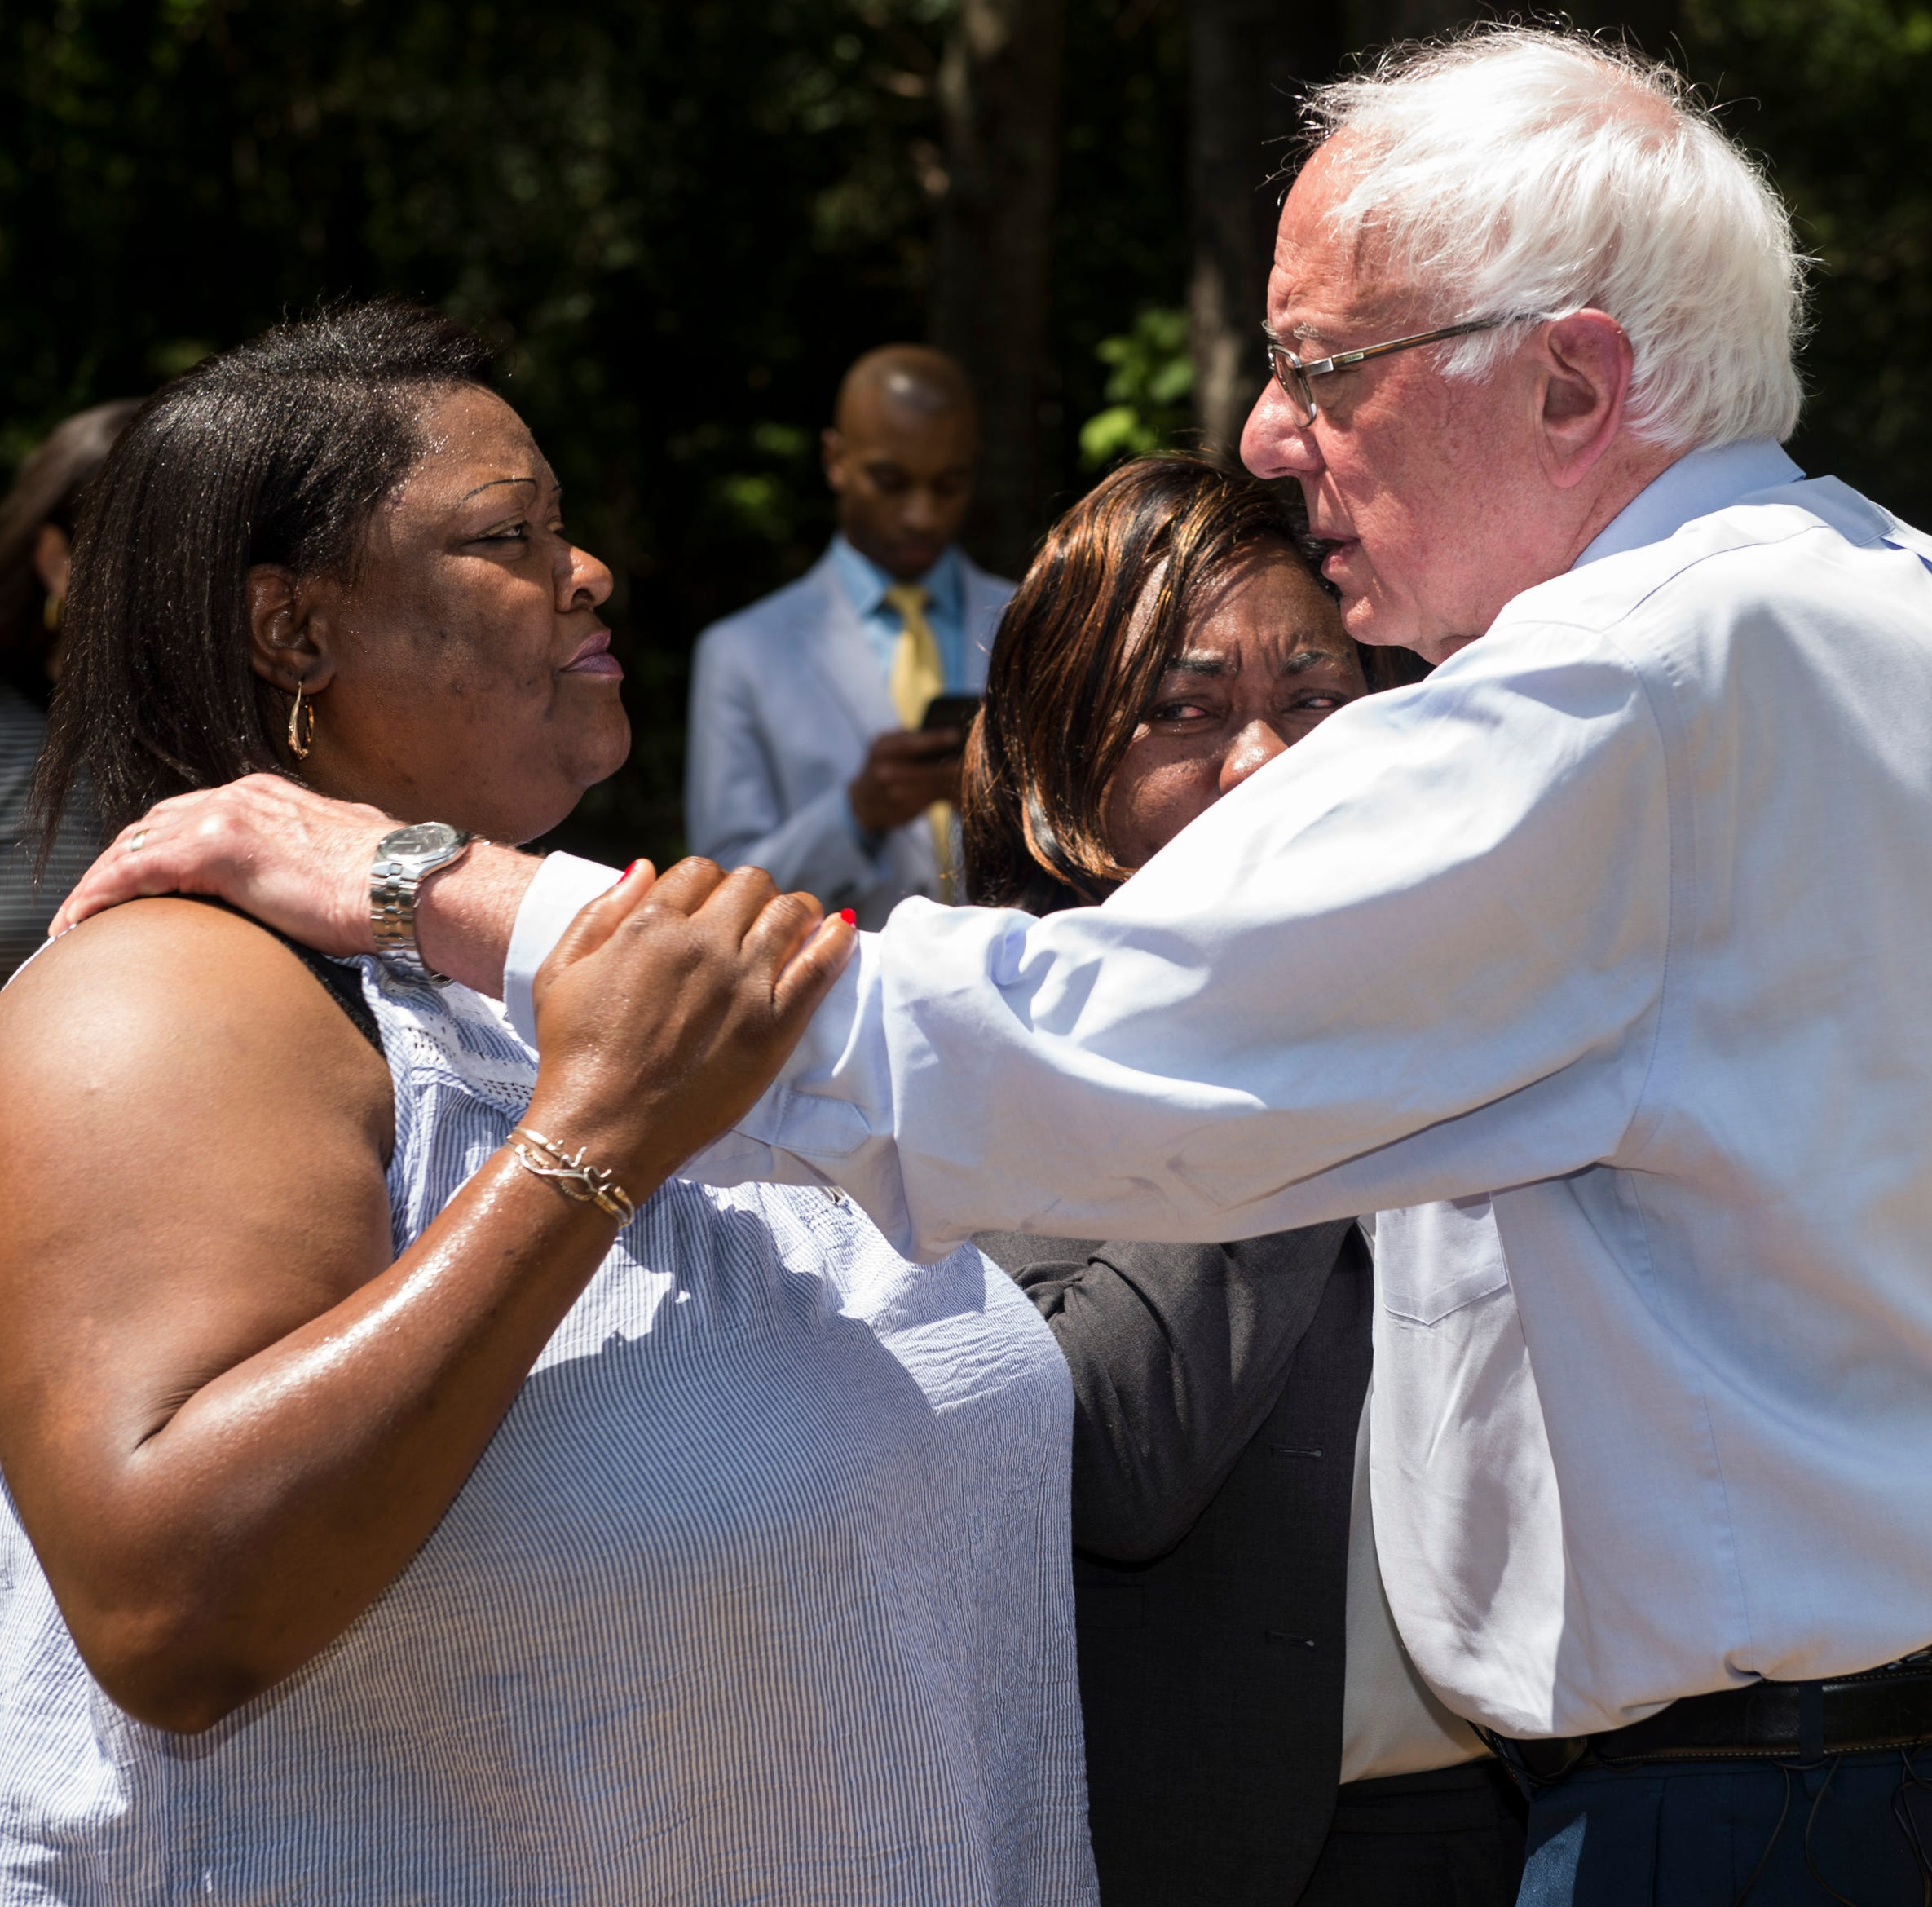 Democratic presidential candidate Bernie Sanders tours the River Region, decries inequality across the area